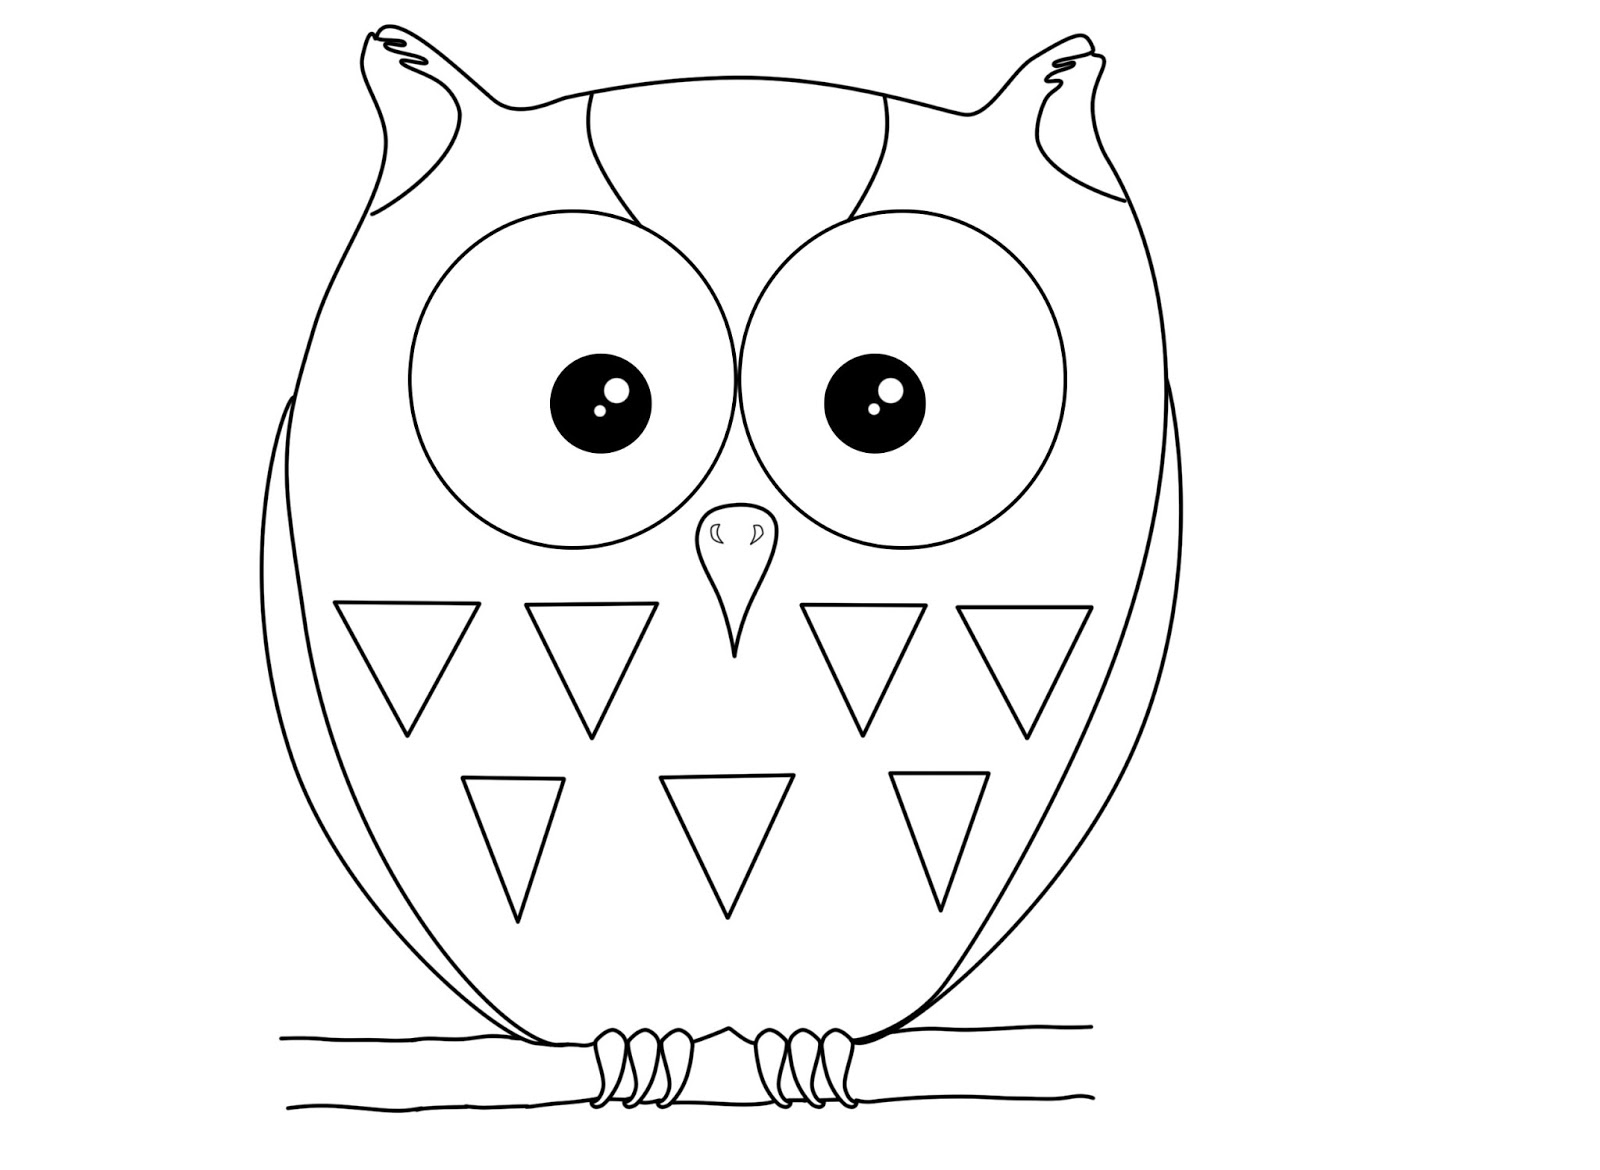 Carla Taylor Illustration: Character Design: Owl